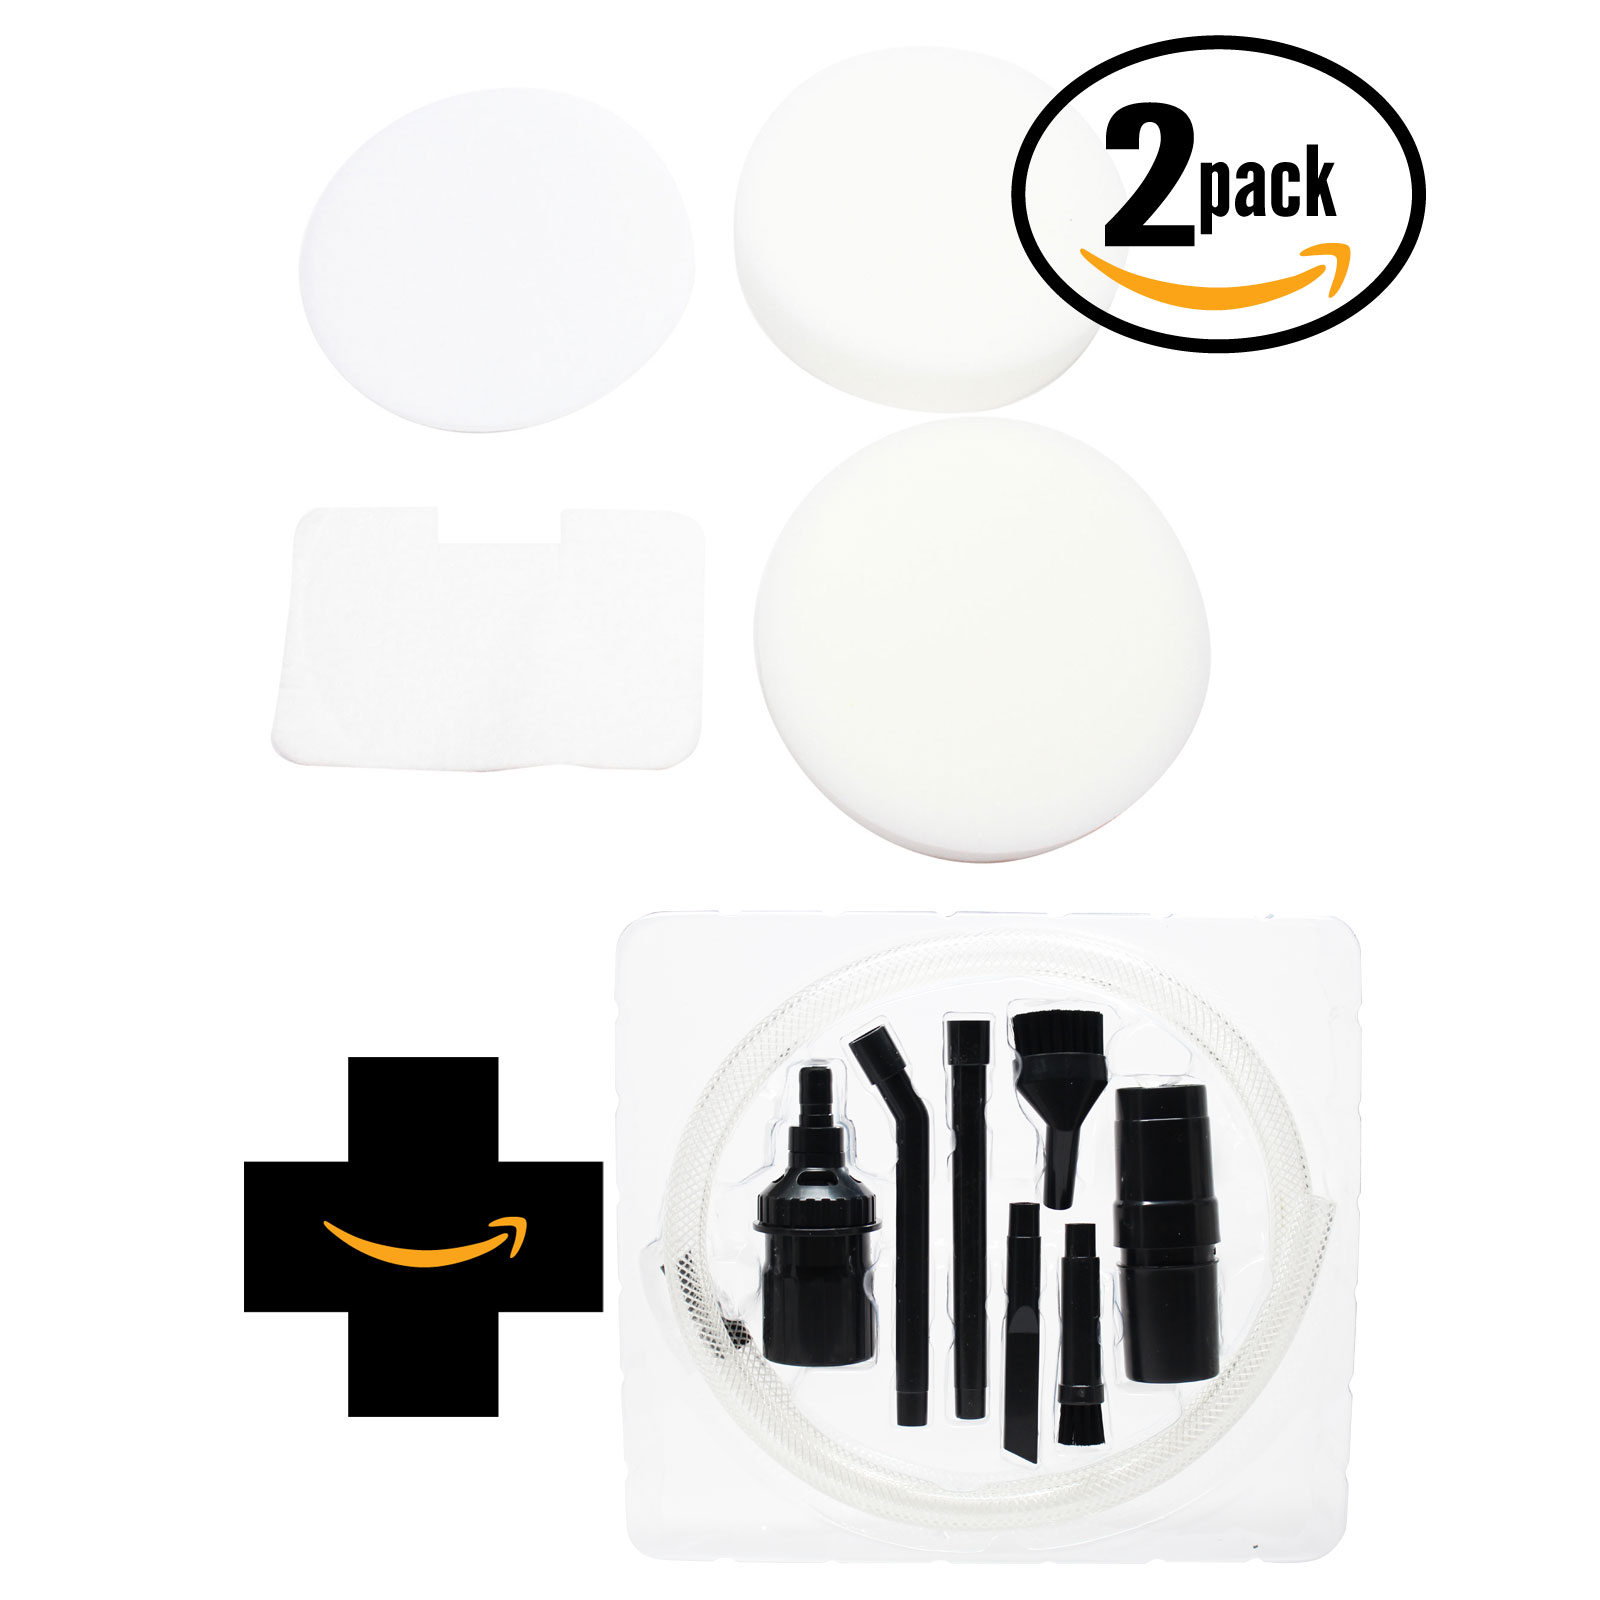 2-Pack Replacement Shark Navigator NV22L Vacuum 4-Piece Foam and Felt Replacement Filter Kit with 7-Piece Kit - Compatible Shark XF22, NV22L Foam and Felt Replacement Filter Kit - image 4 de 4